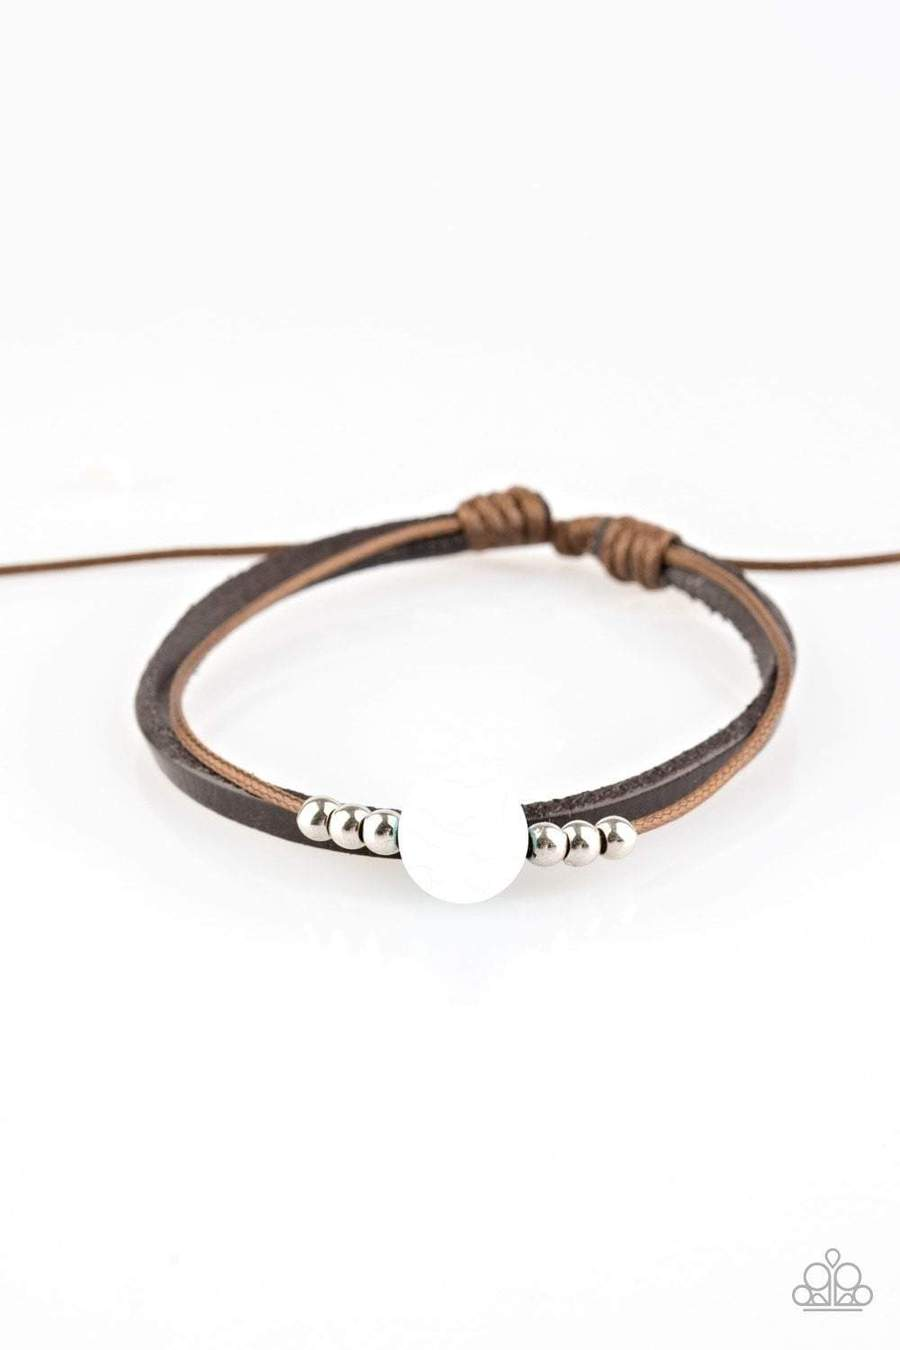 White Stone Center Brown Leather Bracelet